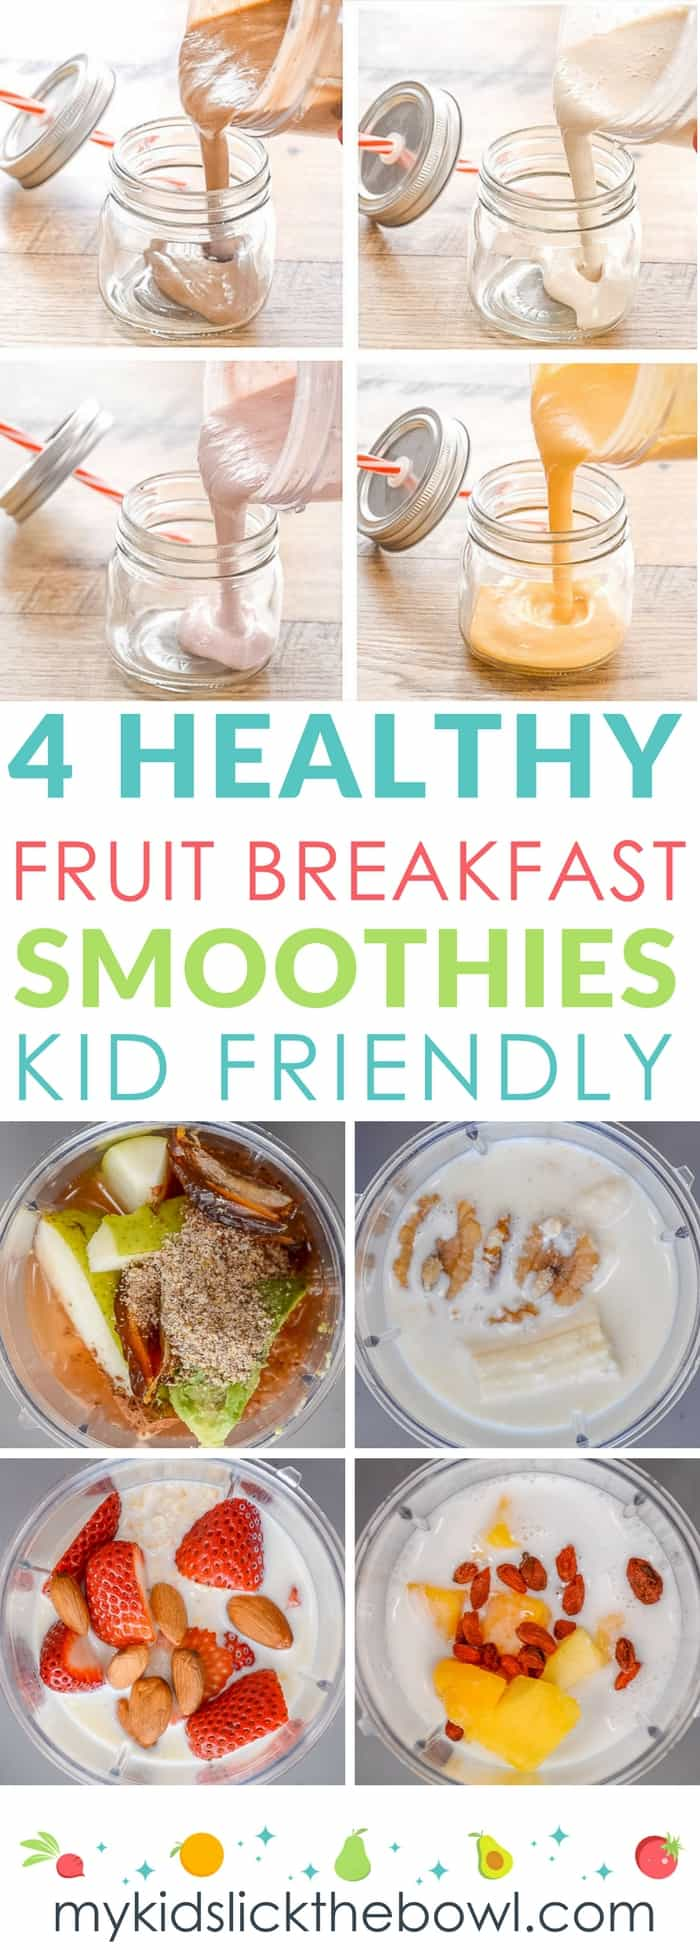 Healthy fruit breakfast smoothies for kids, easy recipes with loaded with healthy fats and grains